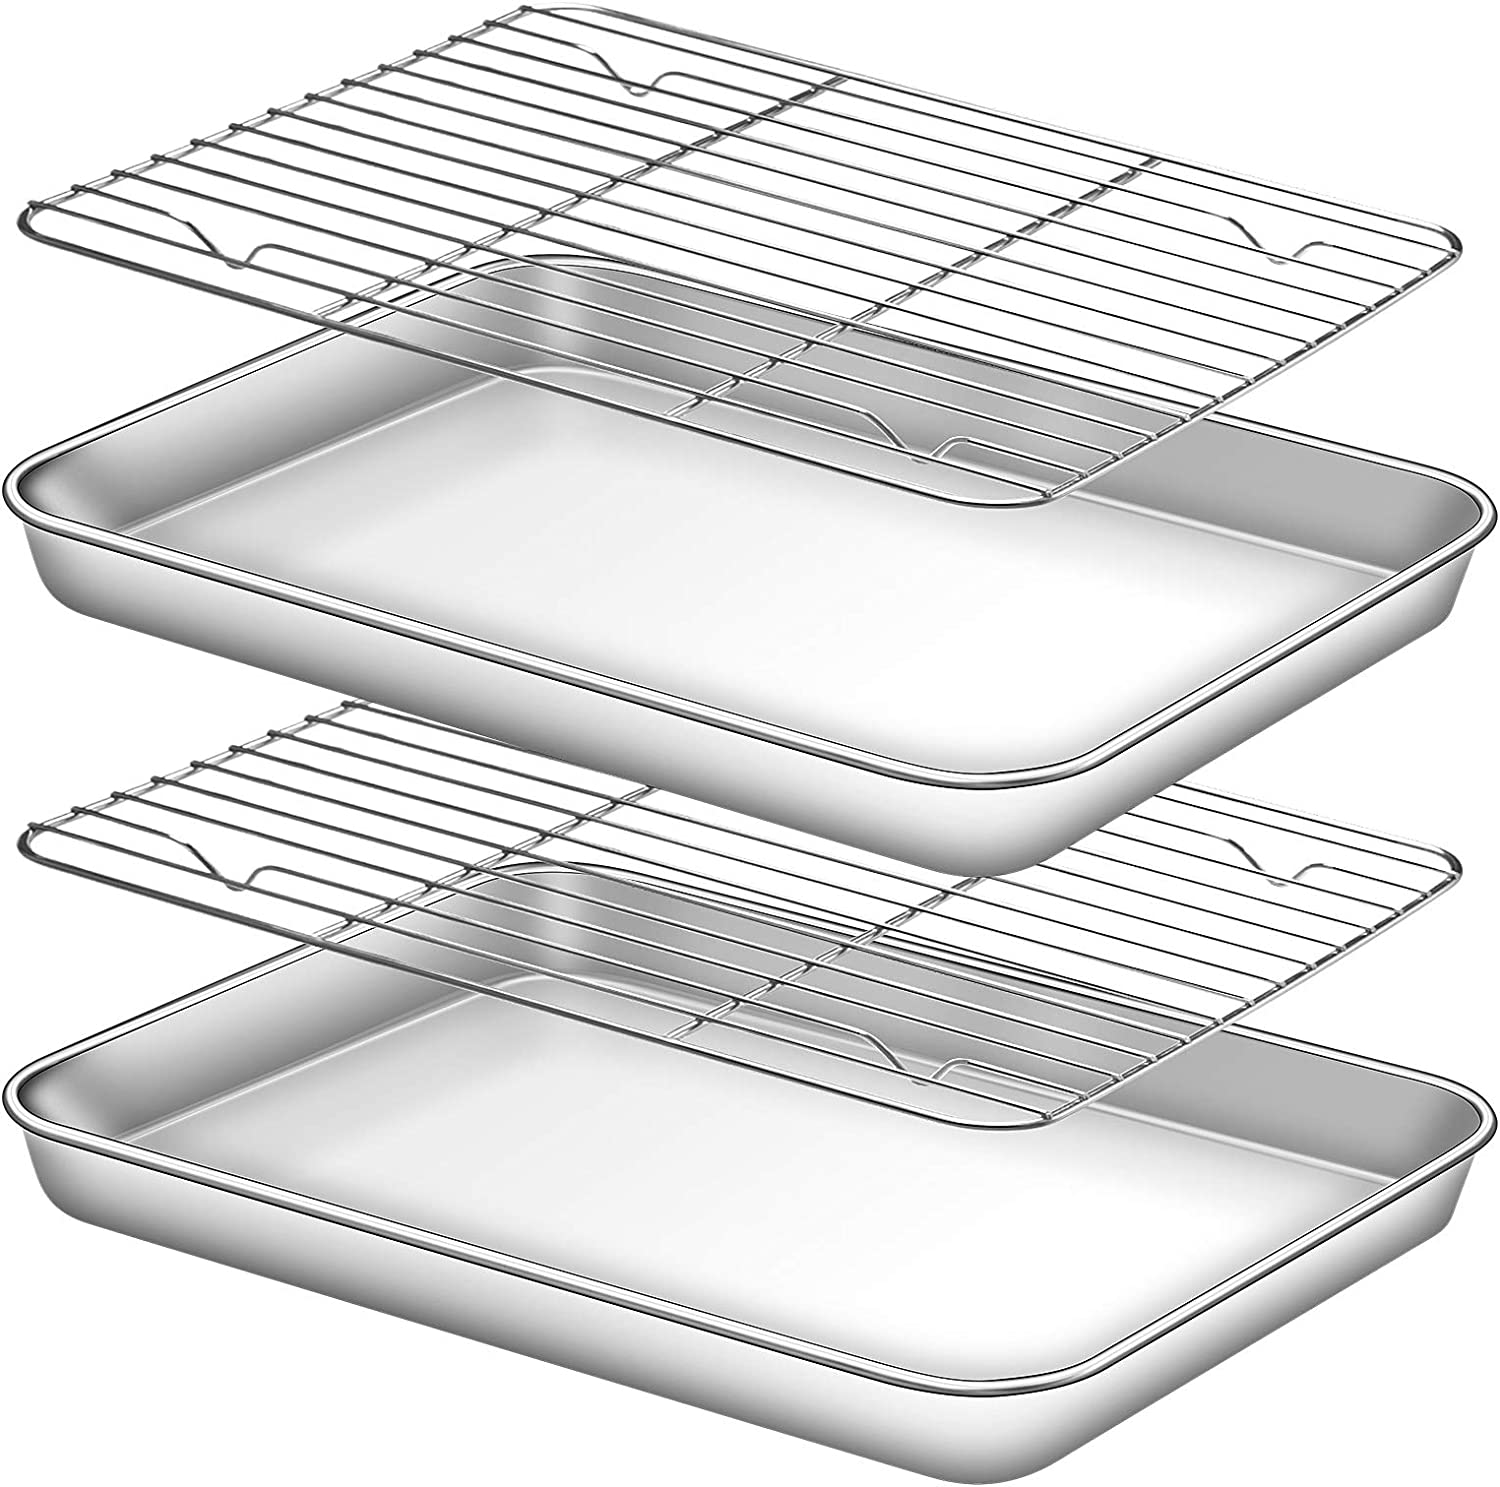 Deedro Baking Sheet with Rack Set [2 Sheets + 2 Racks], Stainless Steel Cookie Half Sheets Baking Pan Oven Tray with Cooling Rack, 10 x 8 x 1 Inch, Heavy Duty, Non-toxic, Easy Clean